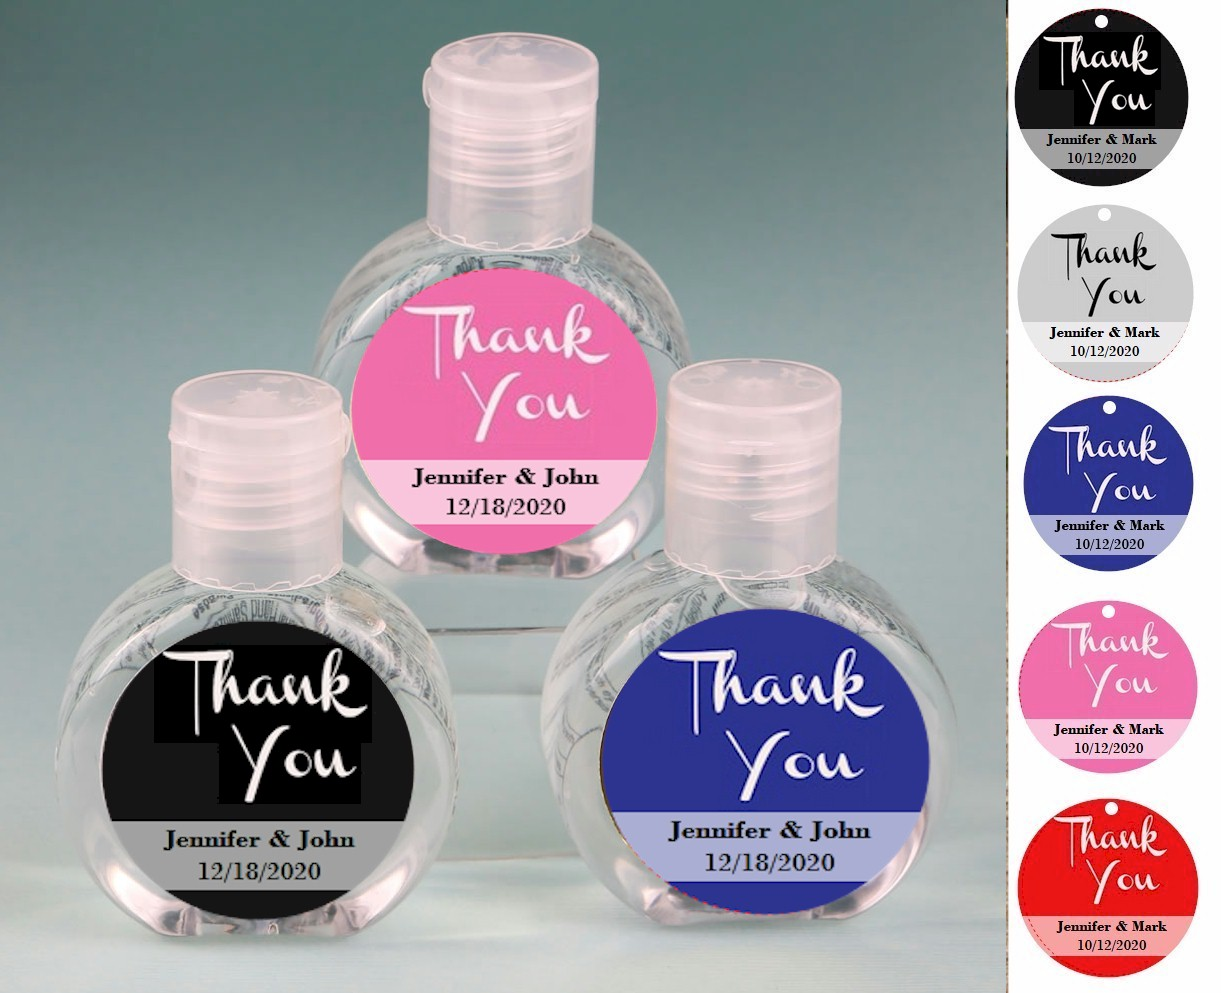 Personalized Hand Sanitizer Label Personalized Hand Sanitizer Sticker Birthday Sheet of 30 Personalized Labels